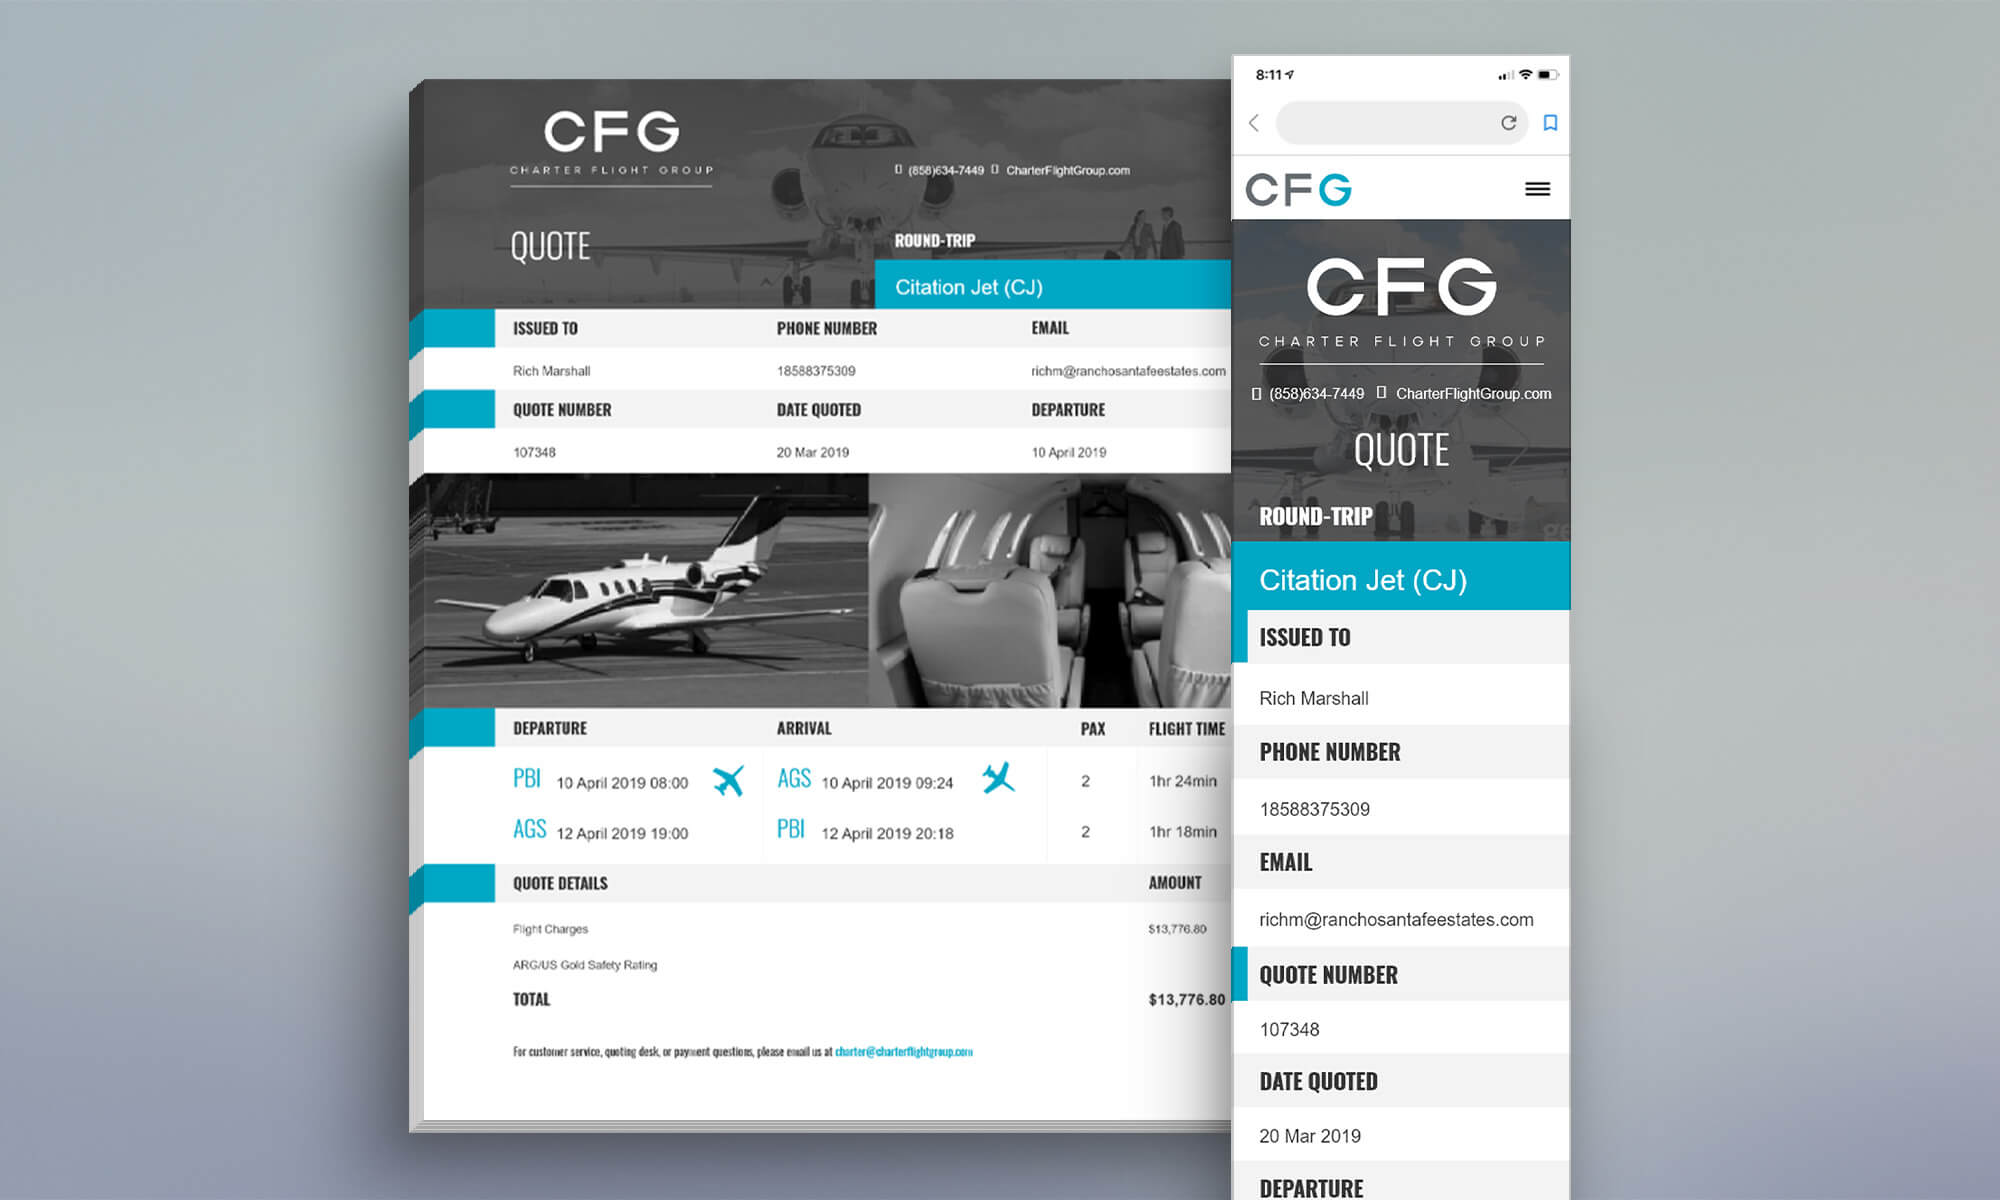 Airline Quote Form